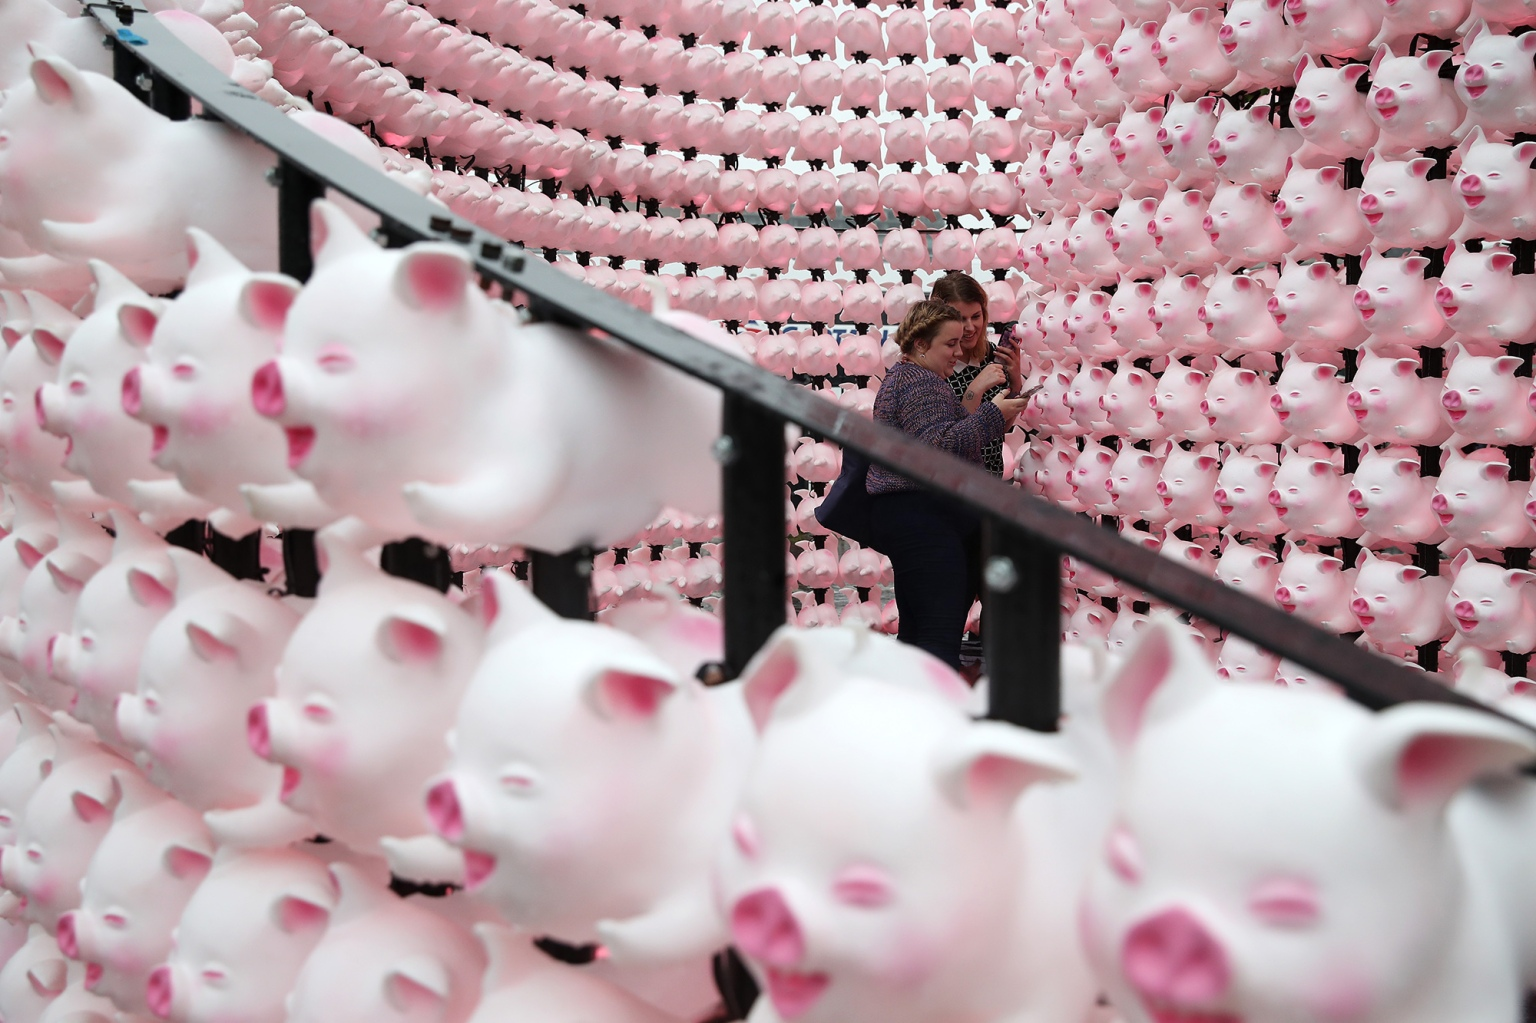 People pose inside the Spiral Pig zodiac lantern—in celebration of the Year of the Pig—by artist John Deng in Sydney on Feb. 1.  The Sydney Lunar Festival has evolved from a small community celebration in Chinatown 23 years ago to now attract more than 1.3 million visitors from all over the world. (Cameron Spencer/Getty Images)